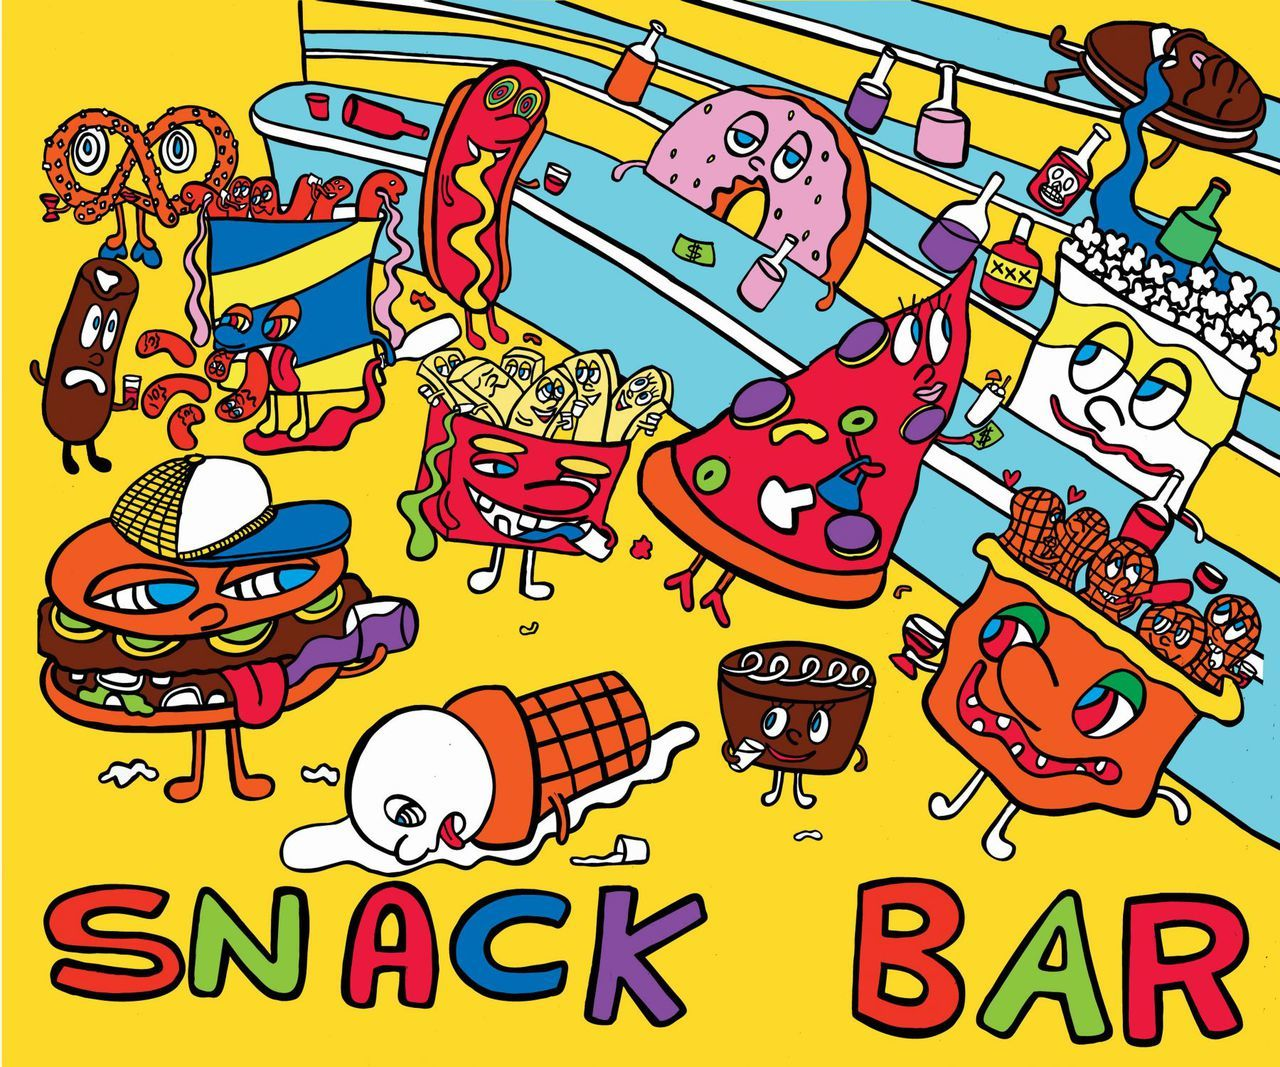 Snack shop poster clipart picture library stock Marcoart Snack Bar Signed Print on Paper or Plexi picture library stock